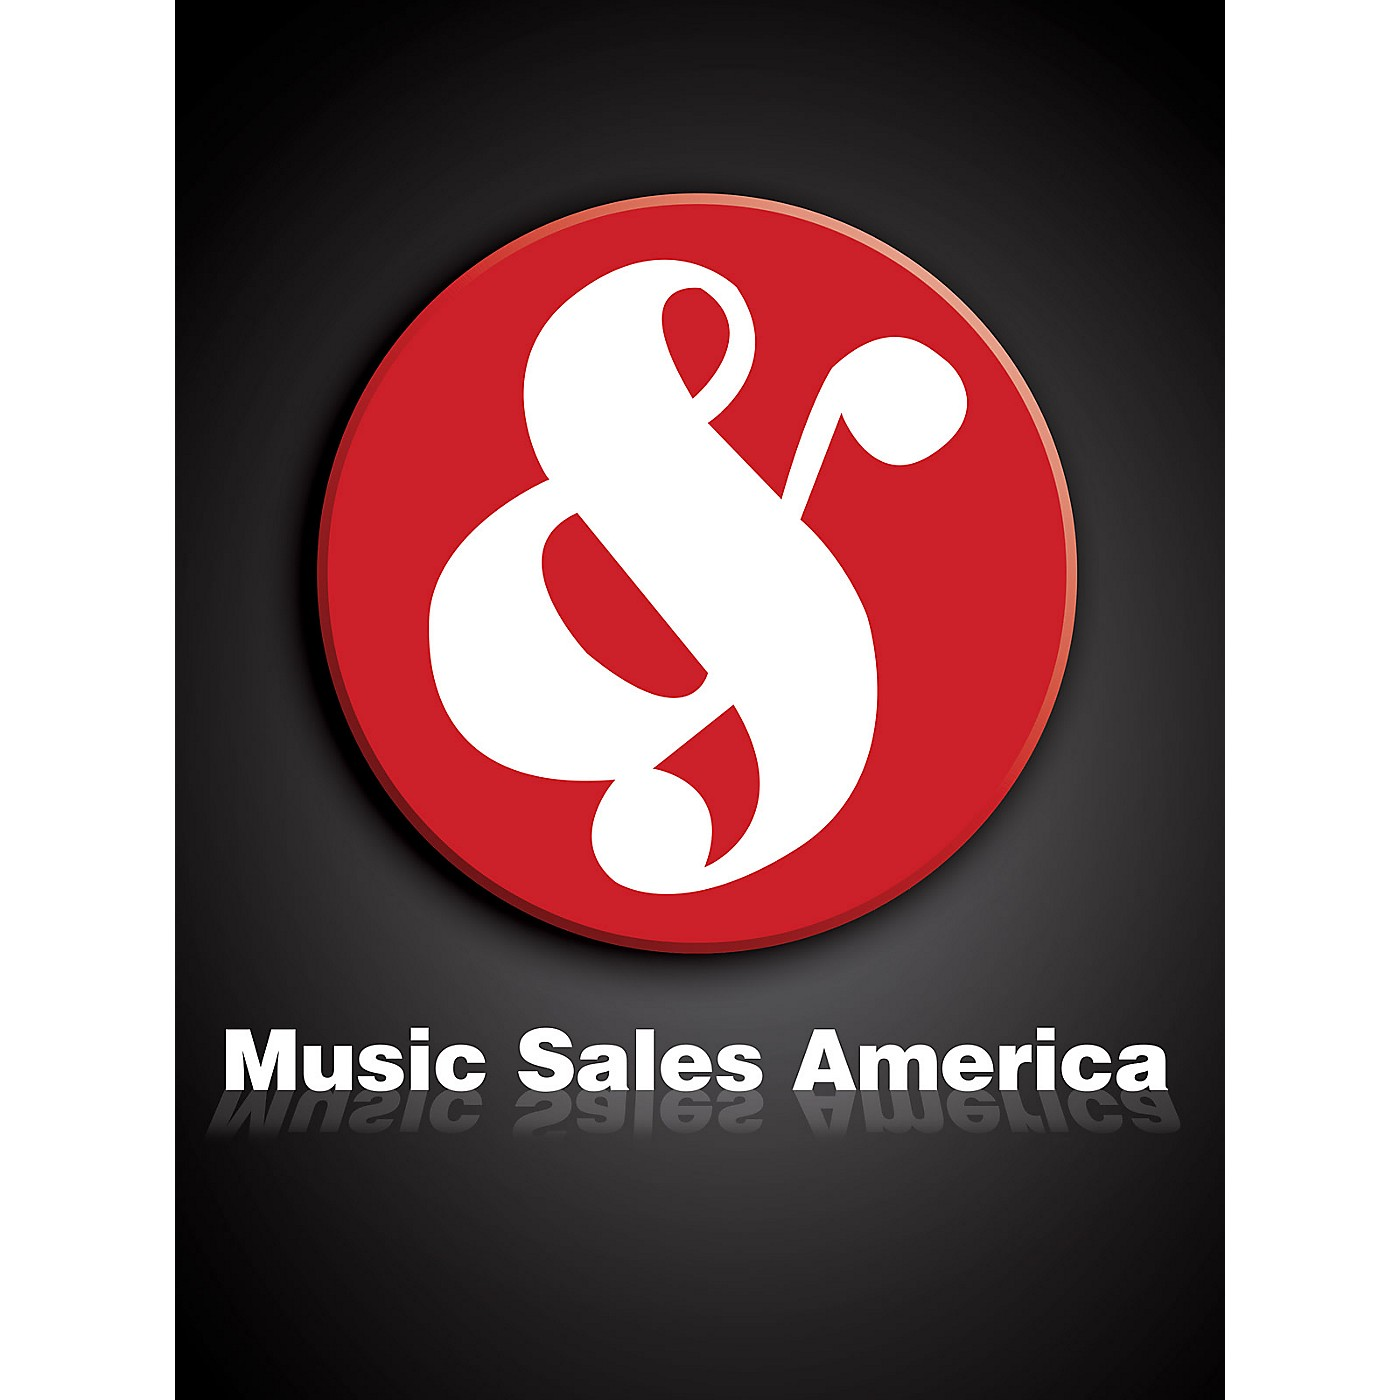 Music Sales Symphony No. 4 The Inextinguishable Op. 29 (Study Score) Music Sales America Series by Carl Nielsen thumbnail